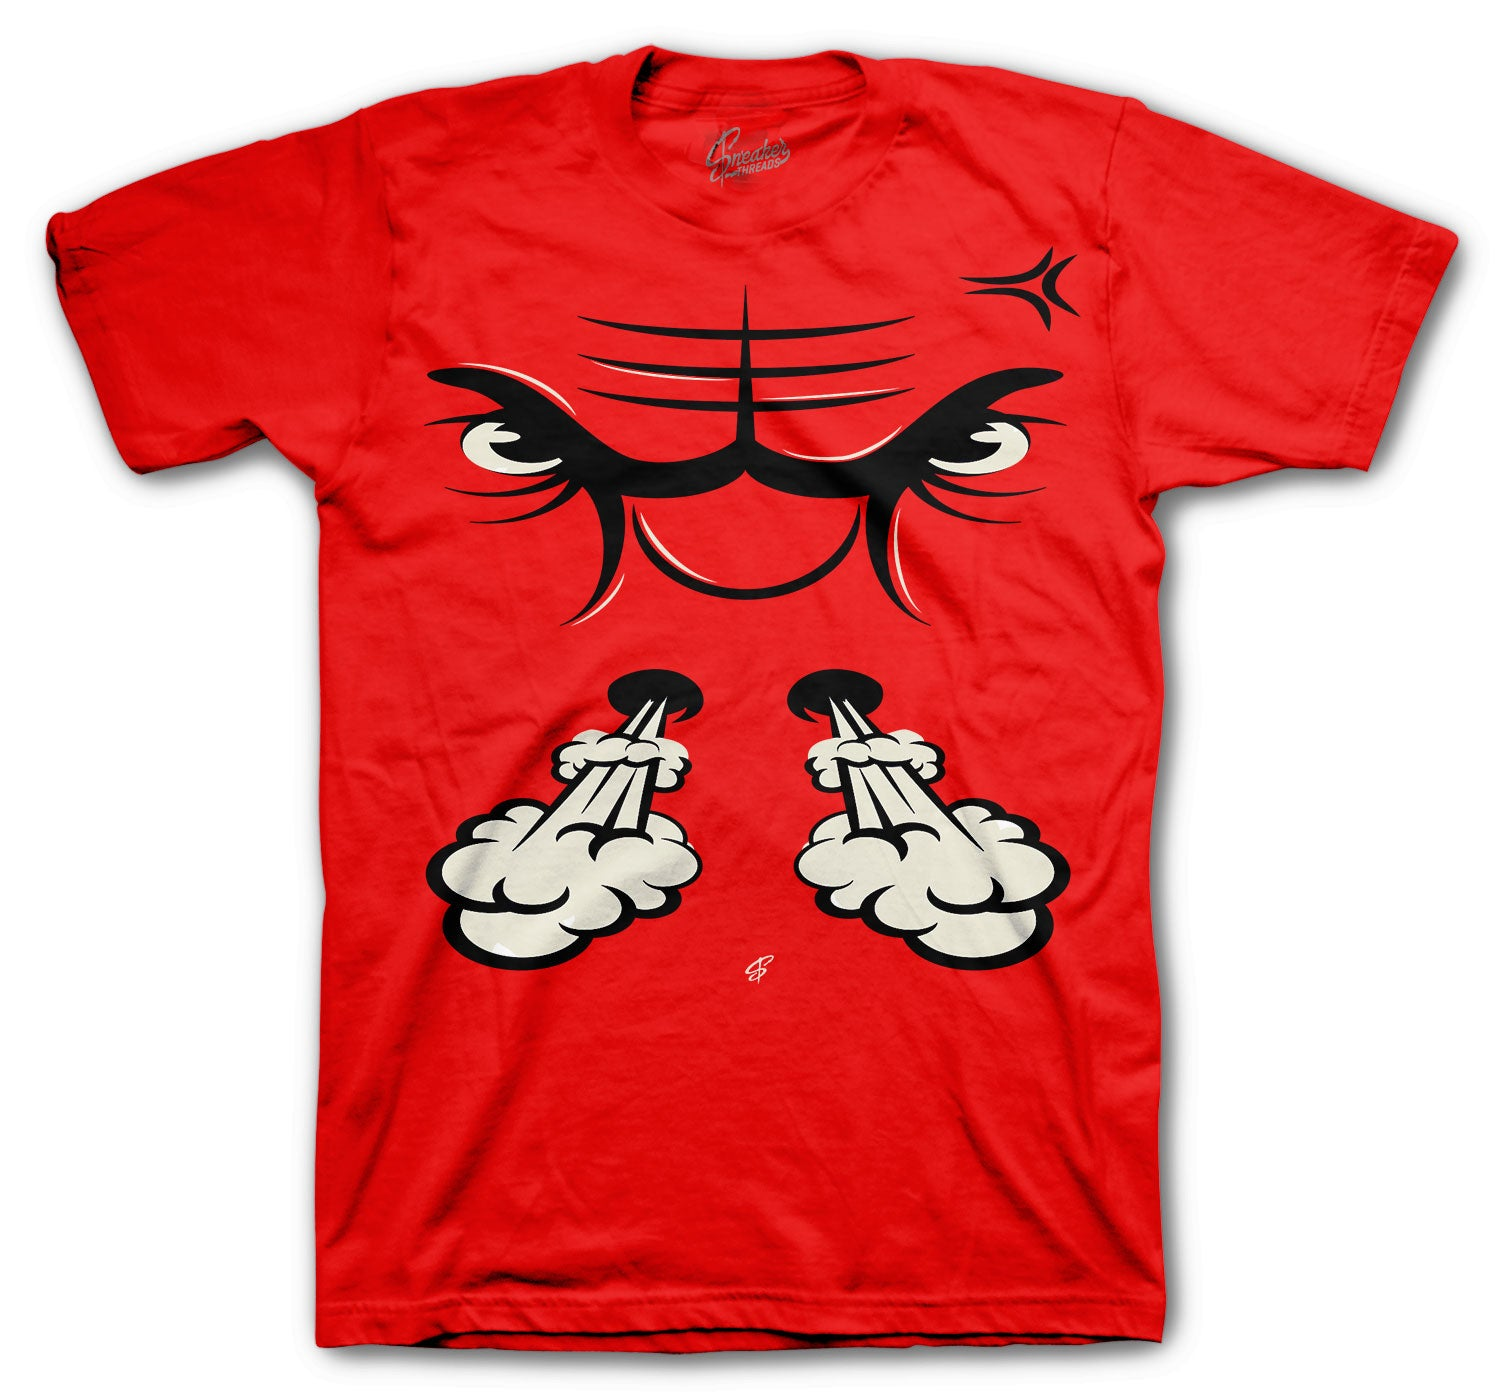 Jordan 5 Raging Bull Rage Face Shirt